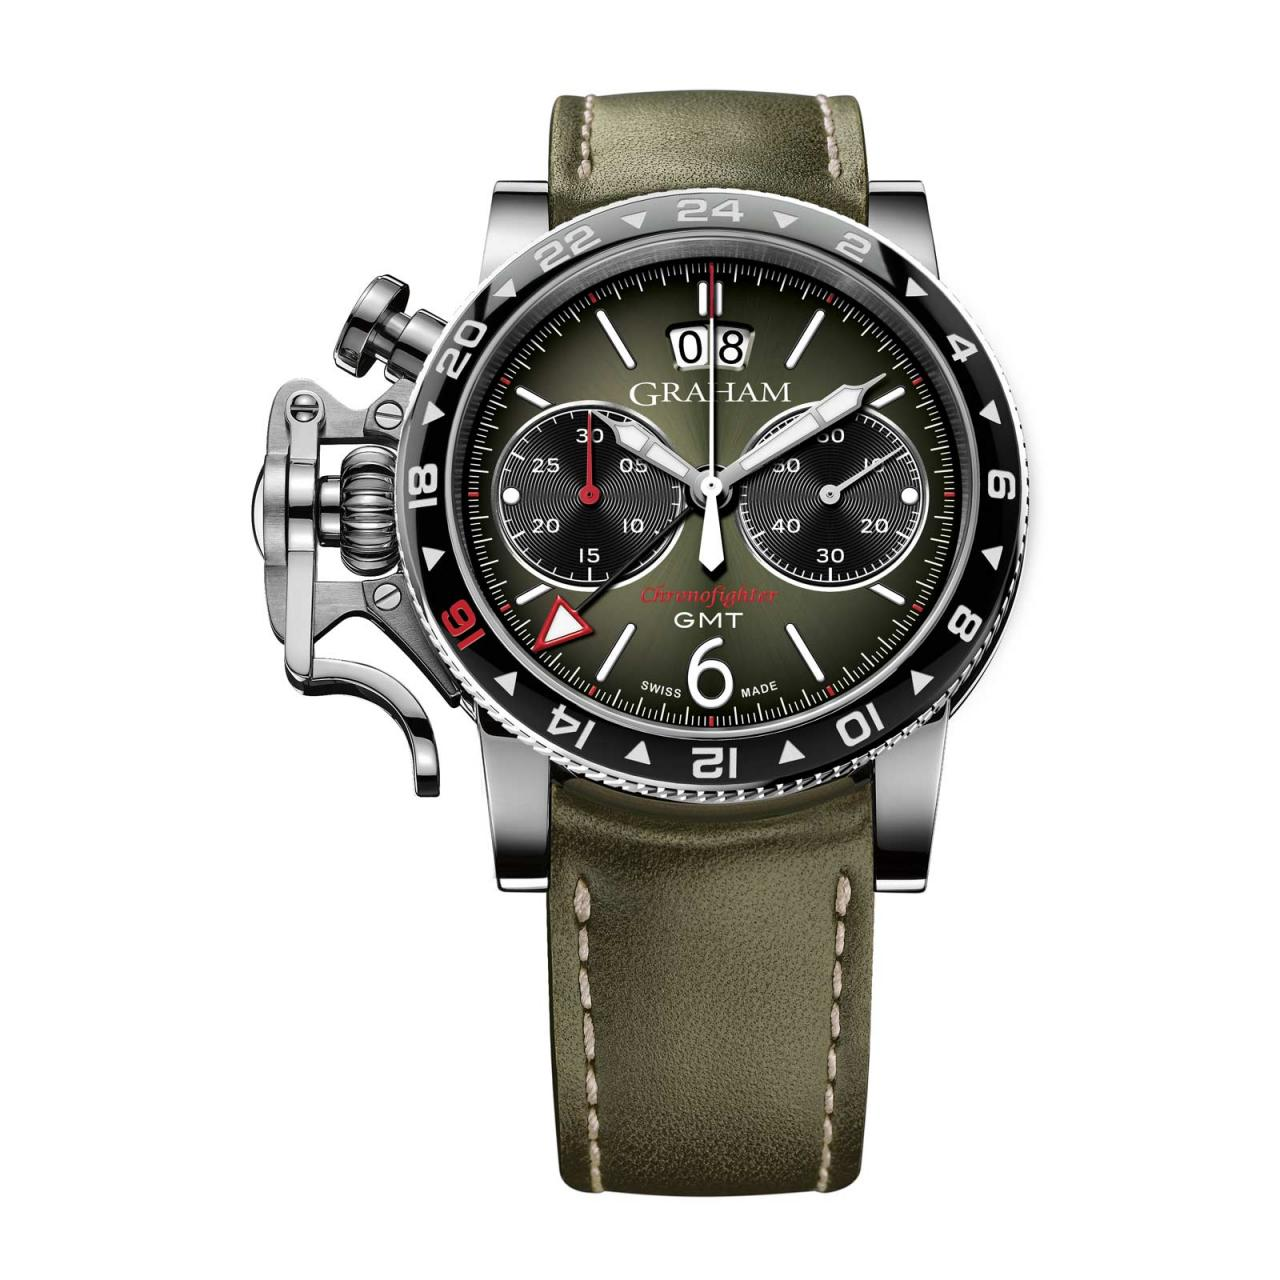 Unique piece Graham watches india Replica Chronofighter Vintage GMT